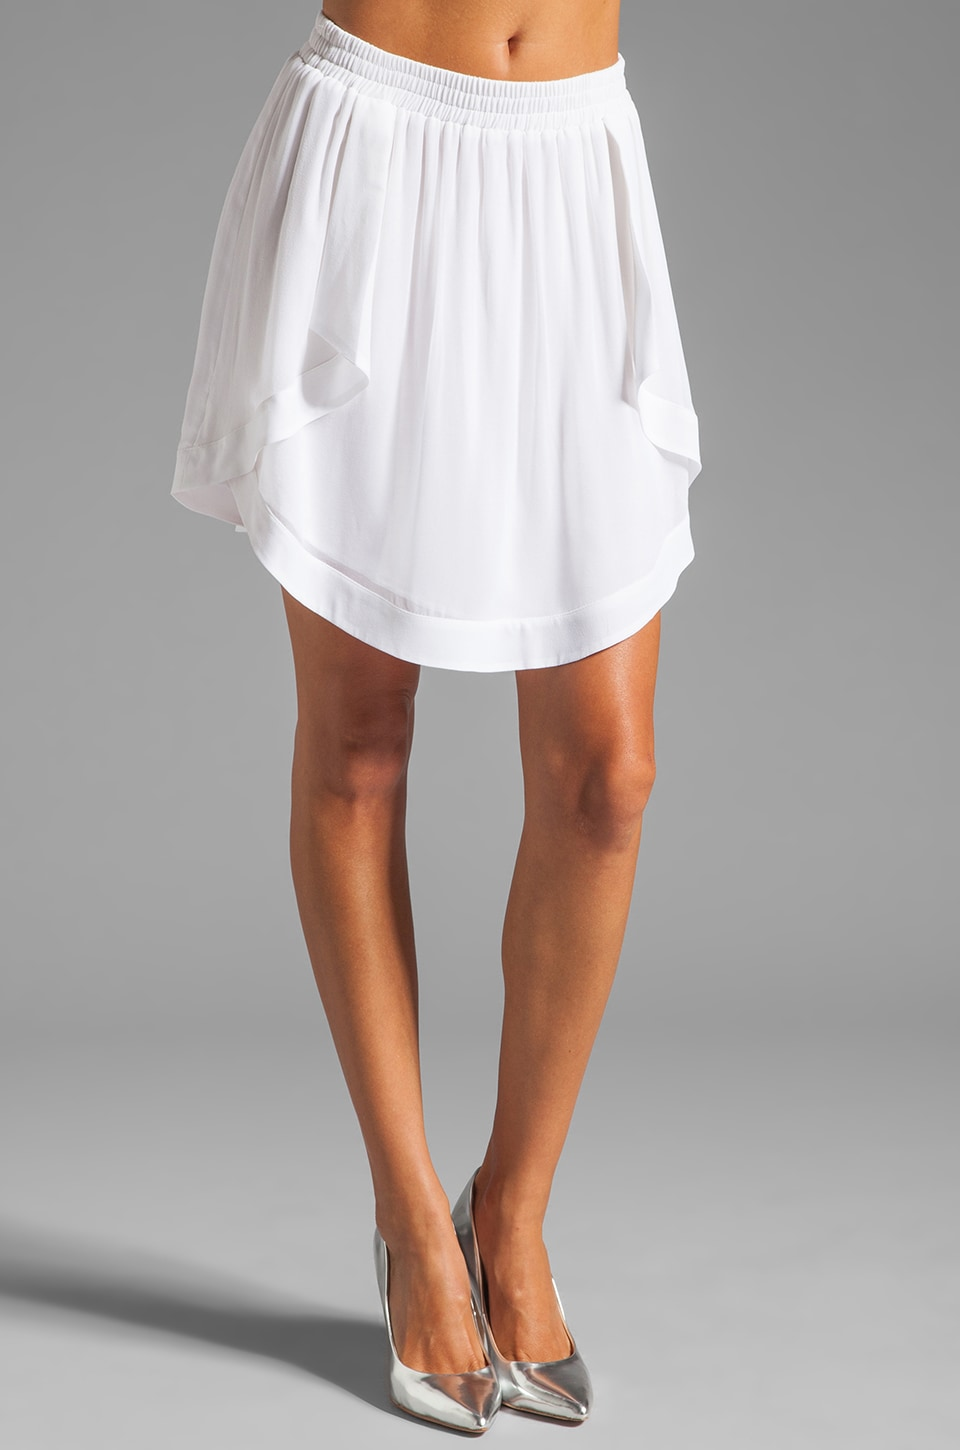 sen Alexa Skirt in White